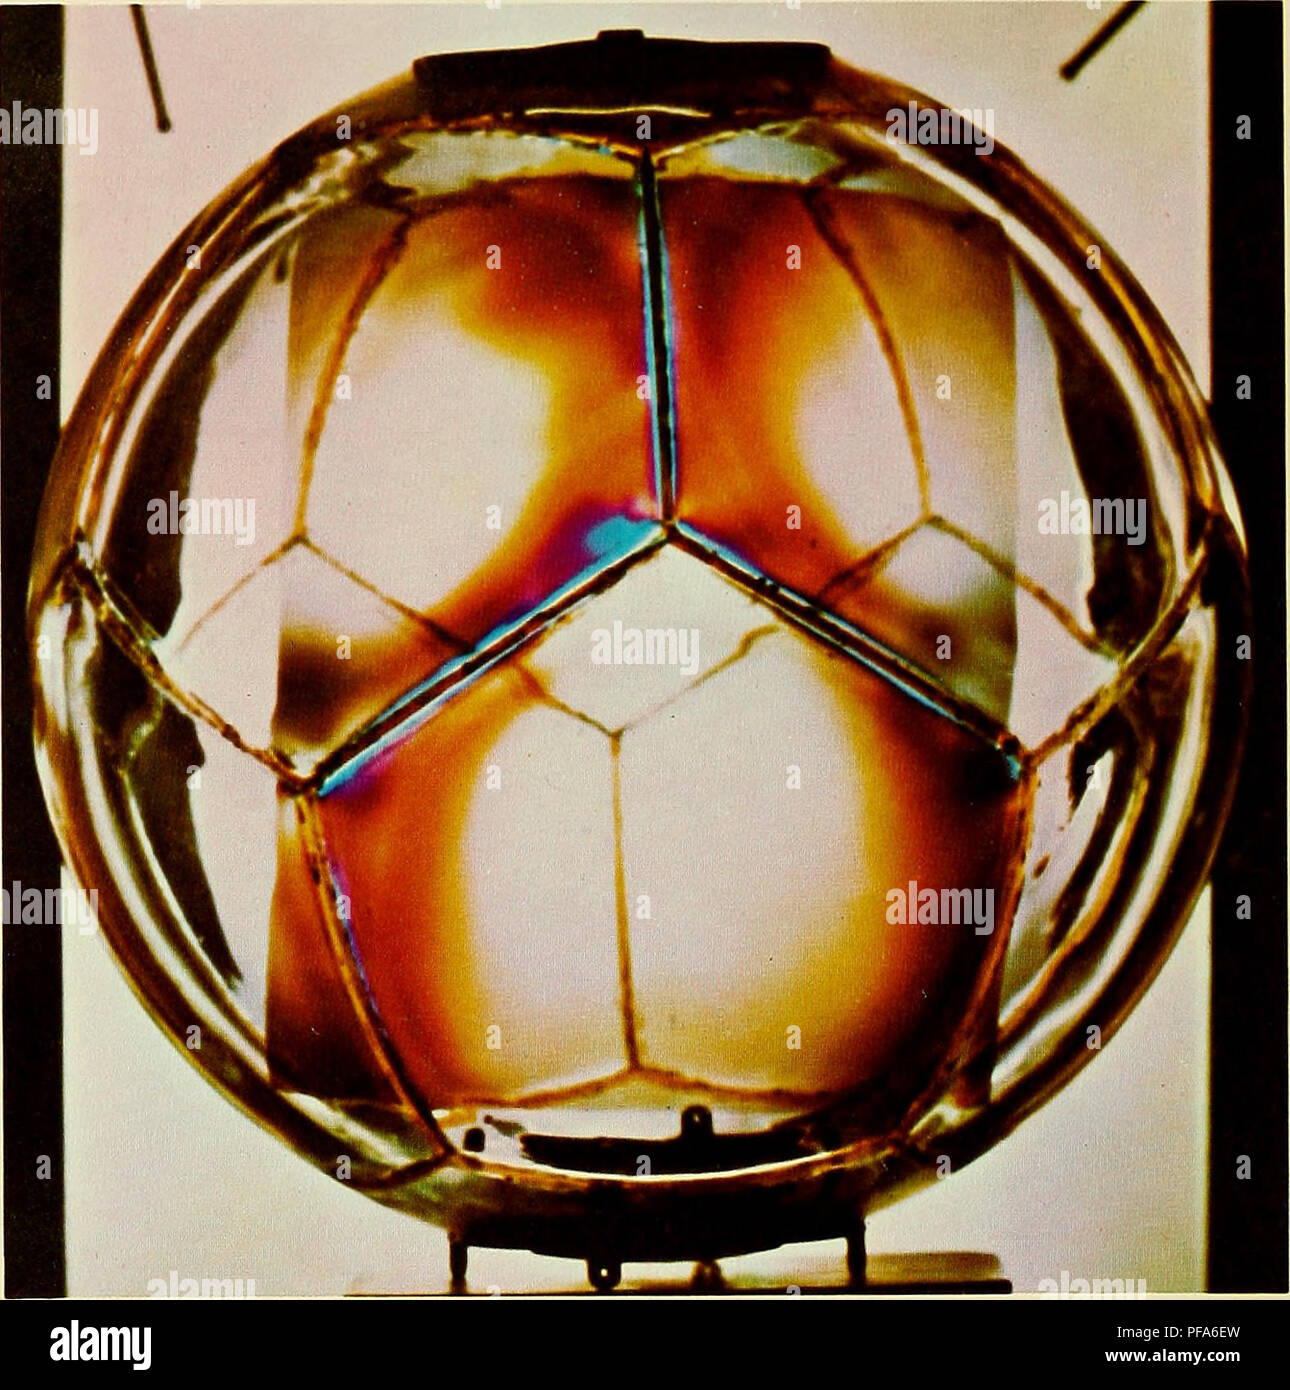 Development of a spherical acrylic plastic pressure hull for